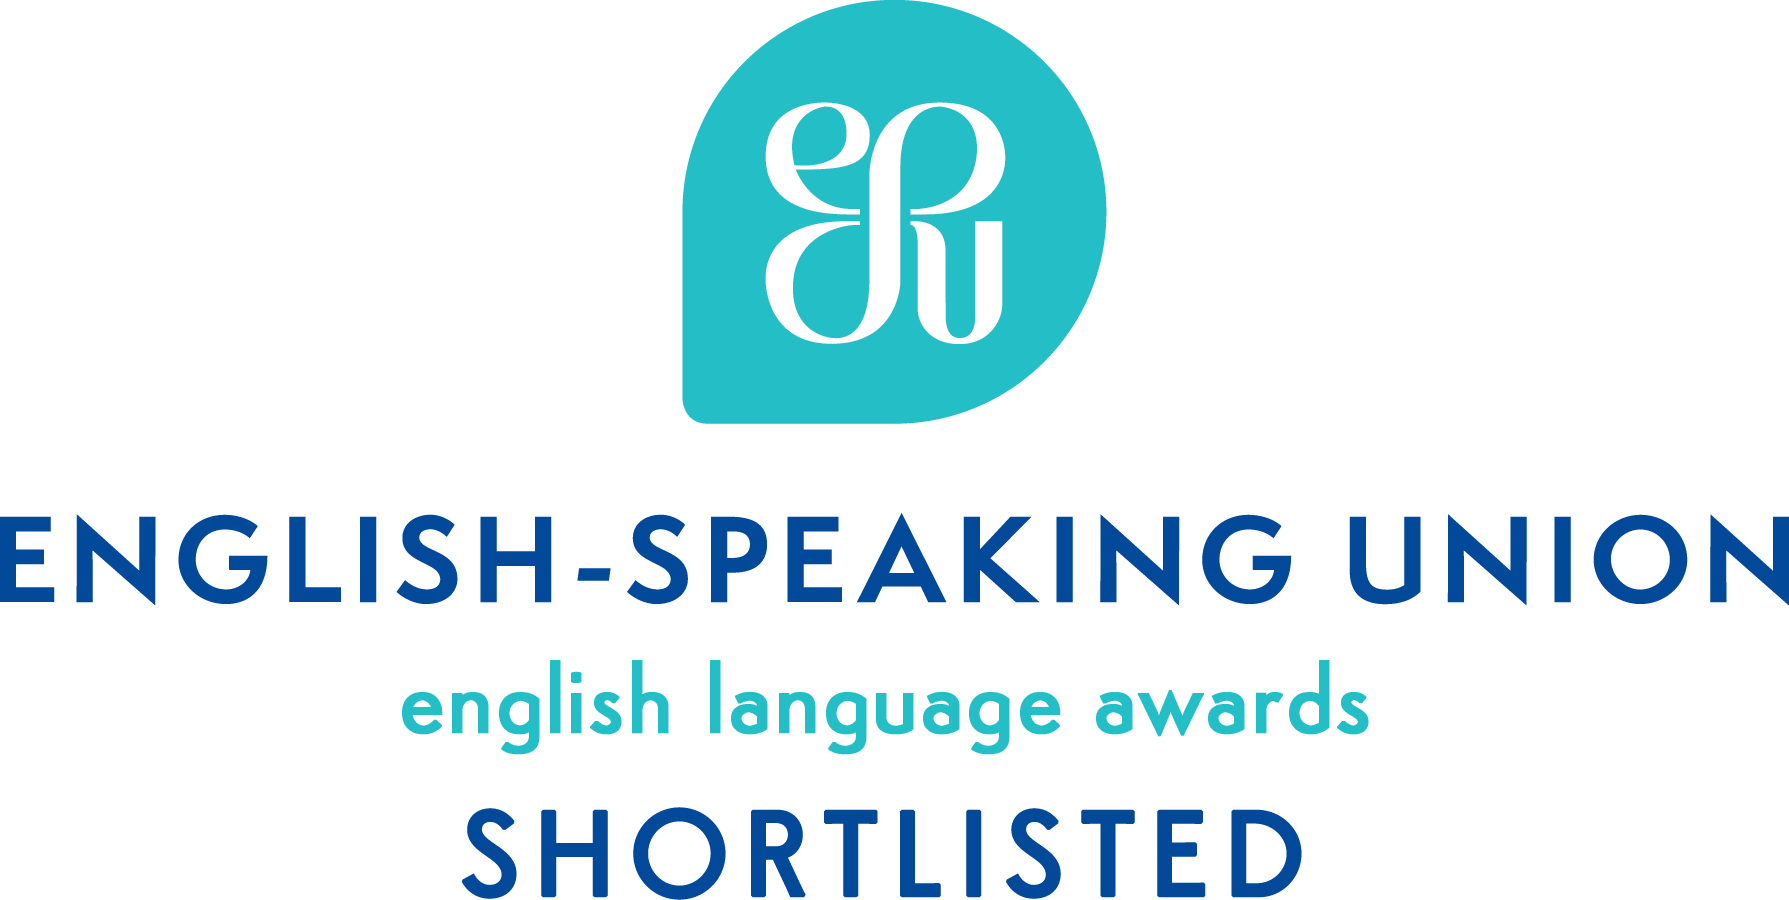 Only the Best Intentions Shortlisted for English Language Awards